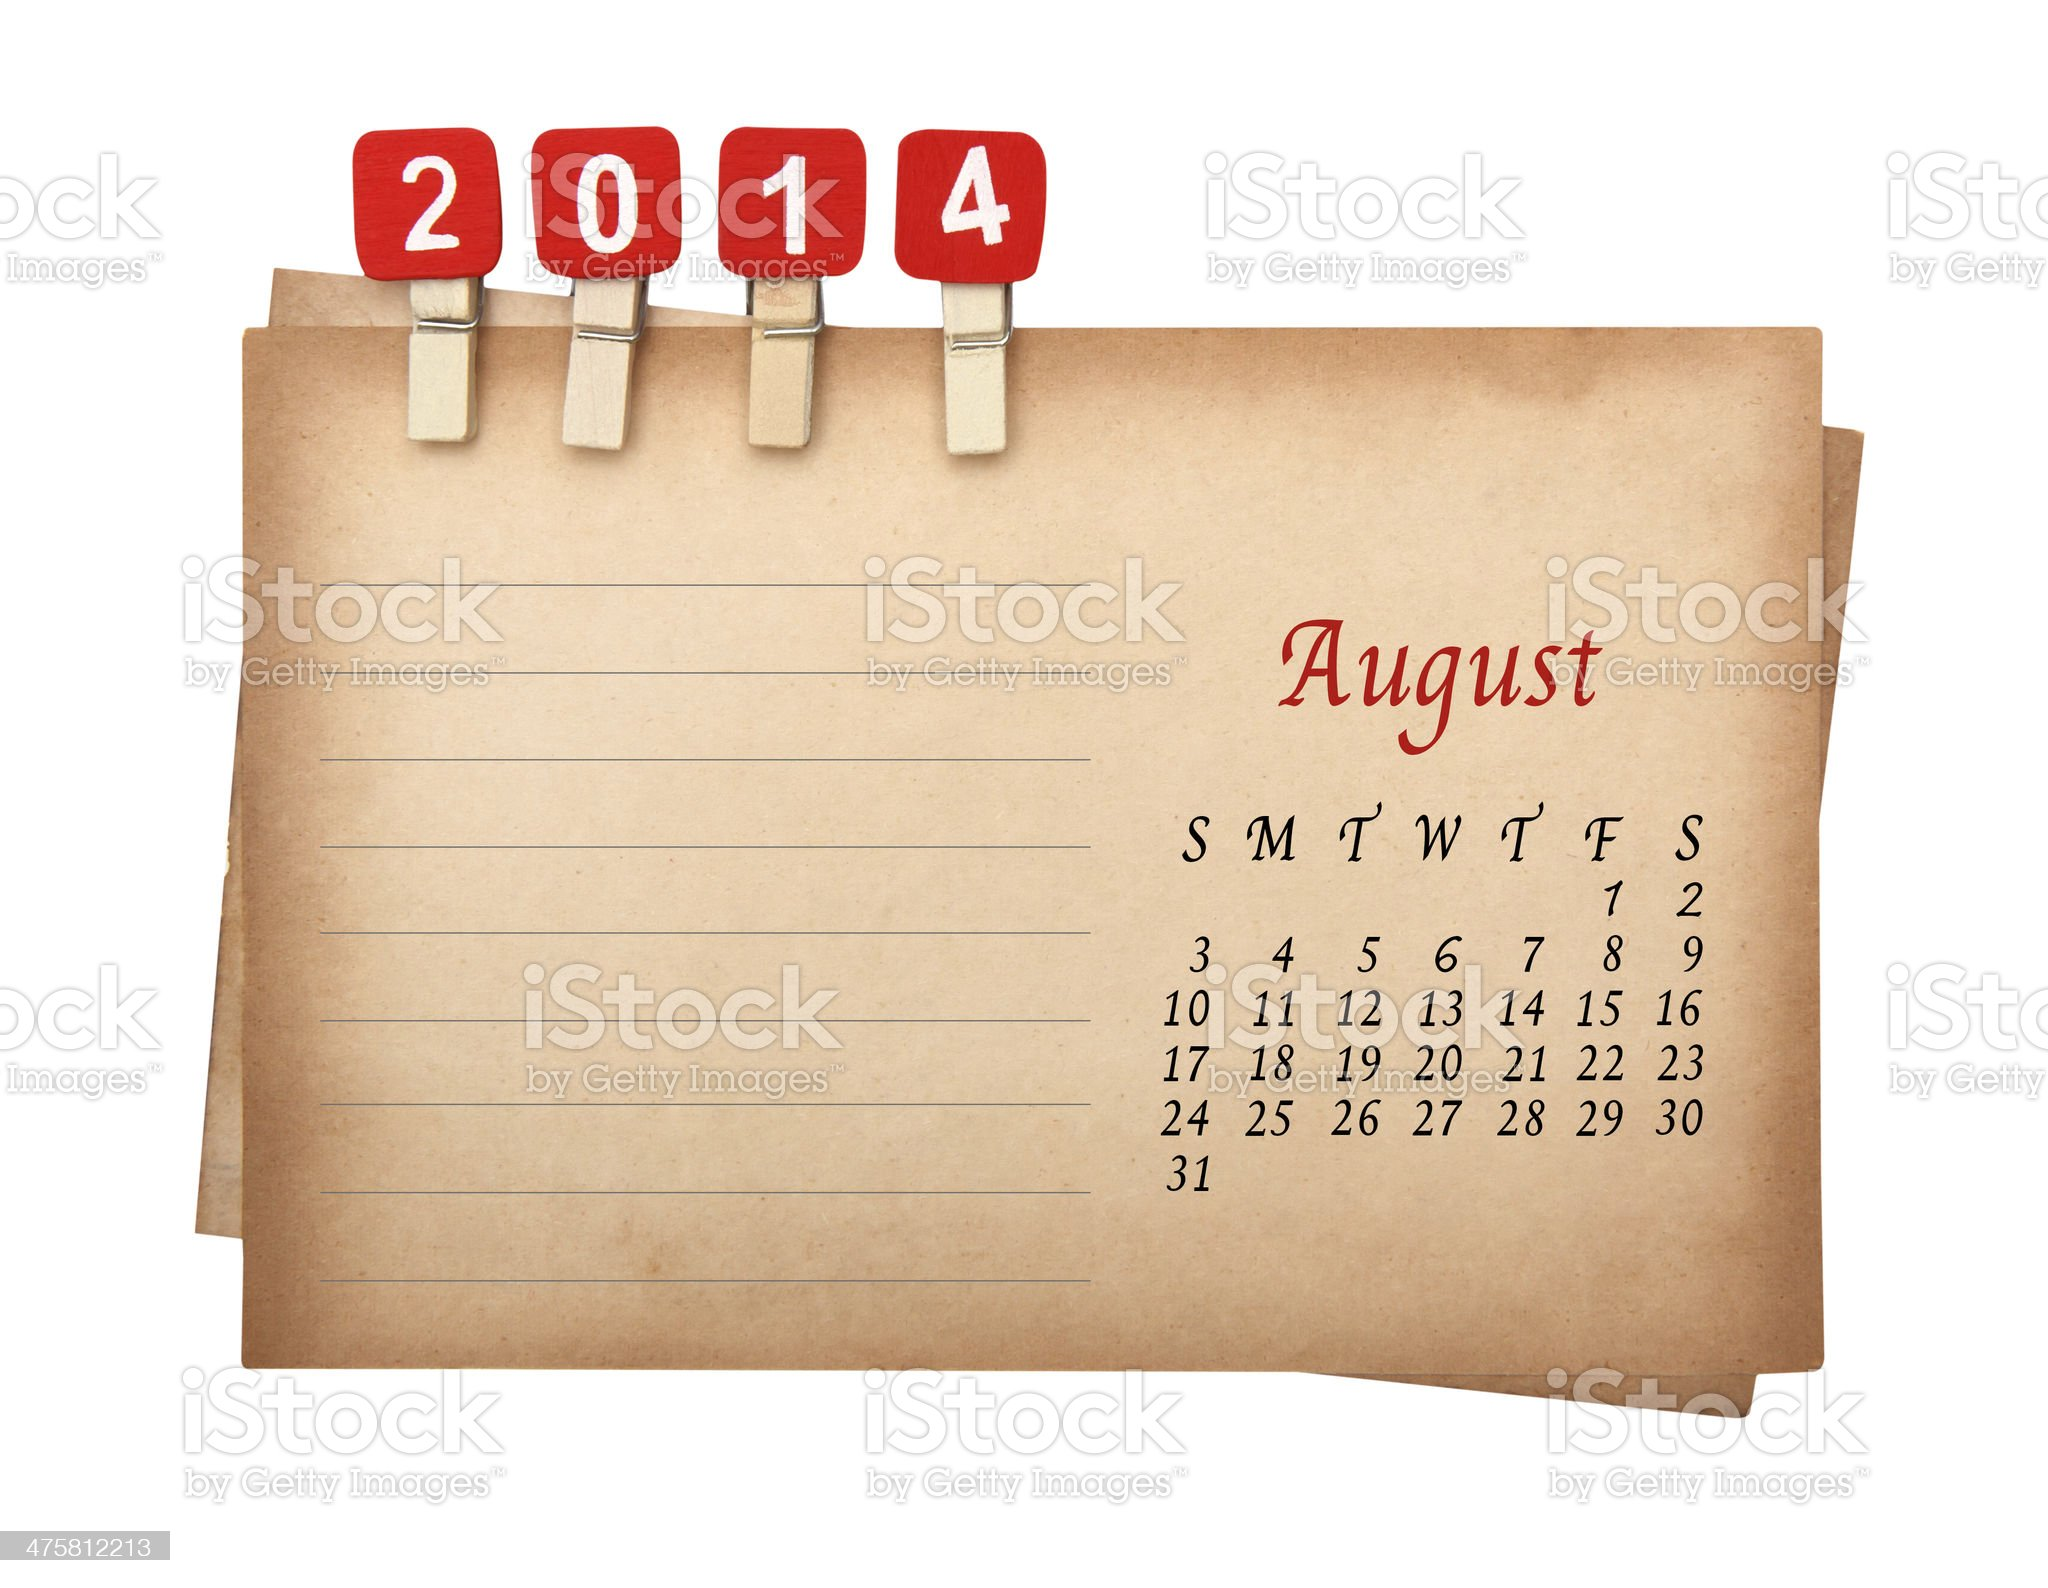 August Calendar 2014 on the old paper with wooden pegs royalty-free stock photo